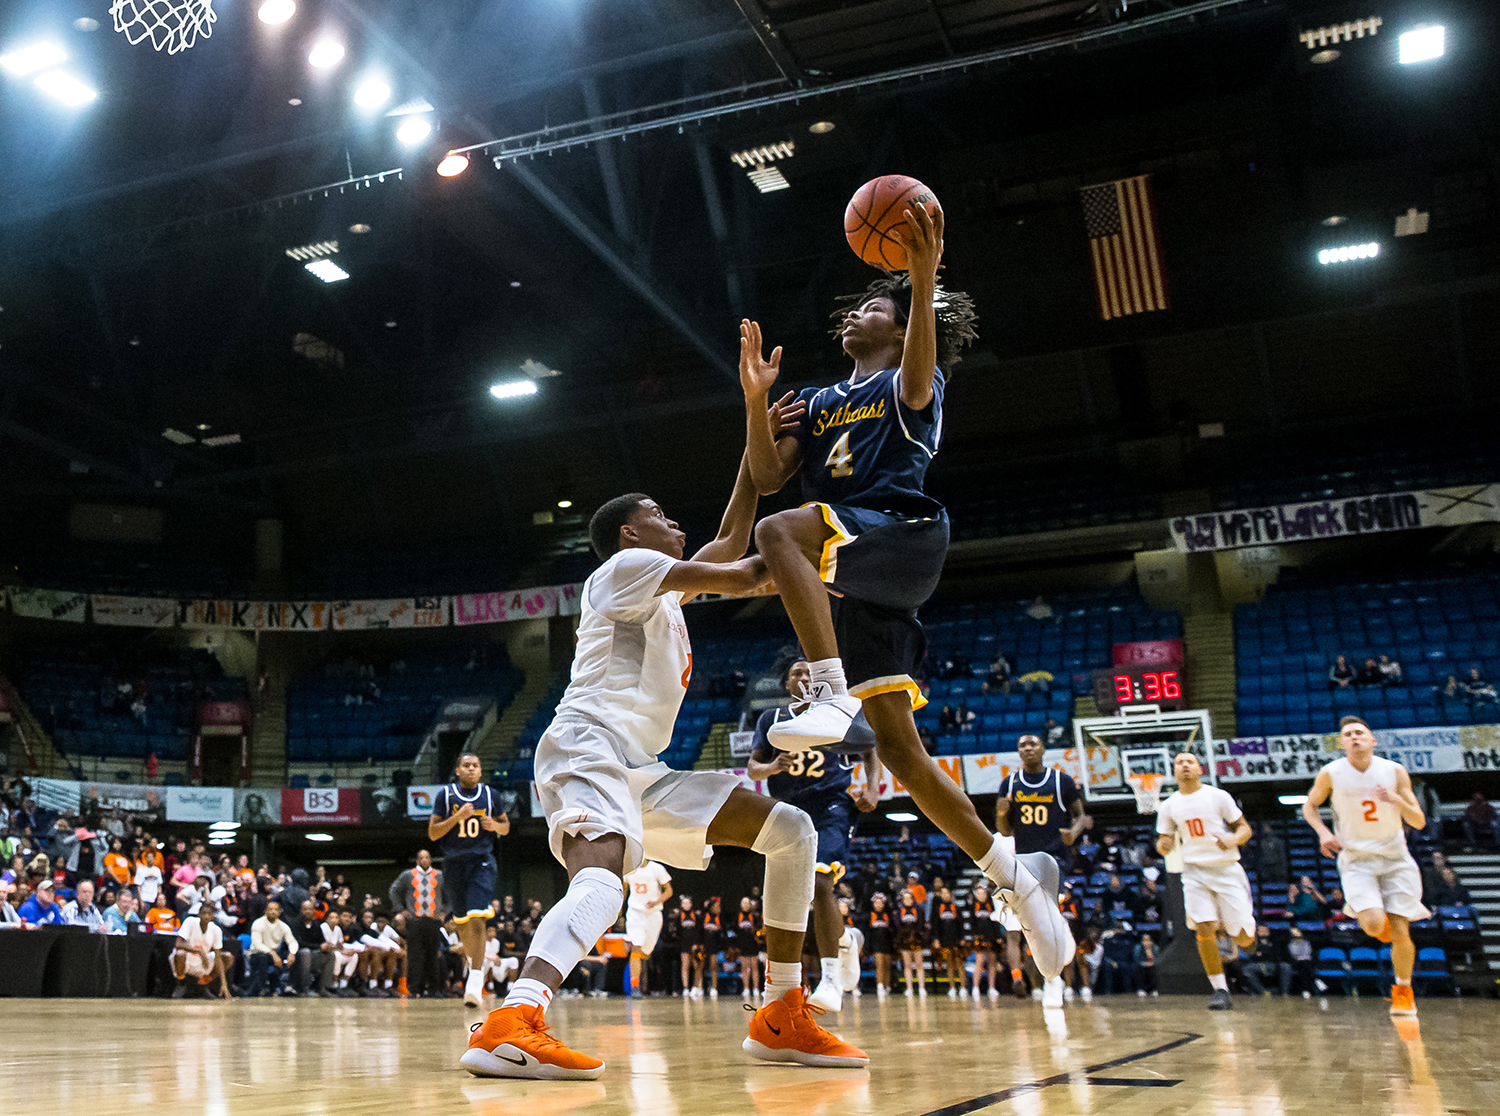 Southeast's Terrion Murdix (4) flies up to the basket against Lanphier's Larry Hemingway (4) in the fourth quarter on opening night of the Boys City Tournament at the Bank of Springfield Center, Wednesday, Jan. 16, 2019, in Springfield, Ill. [Justin L. Fowler/The State Journal-Register]